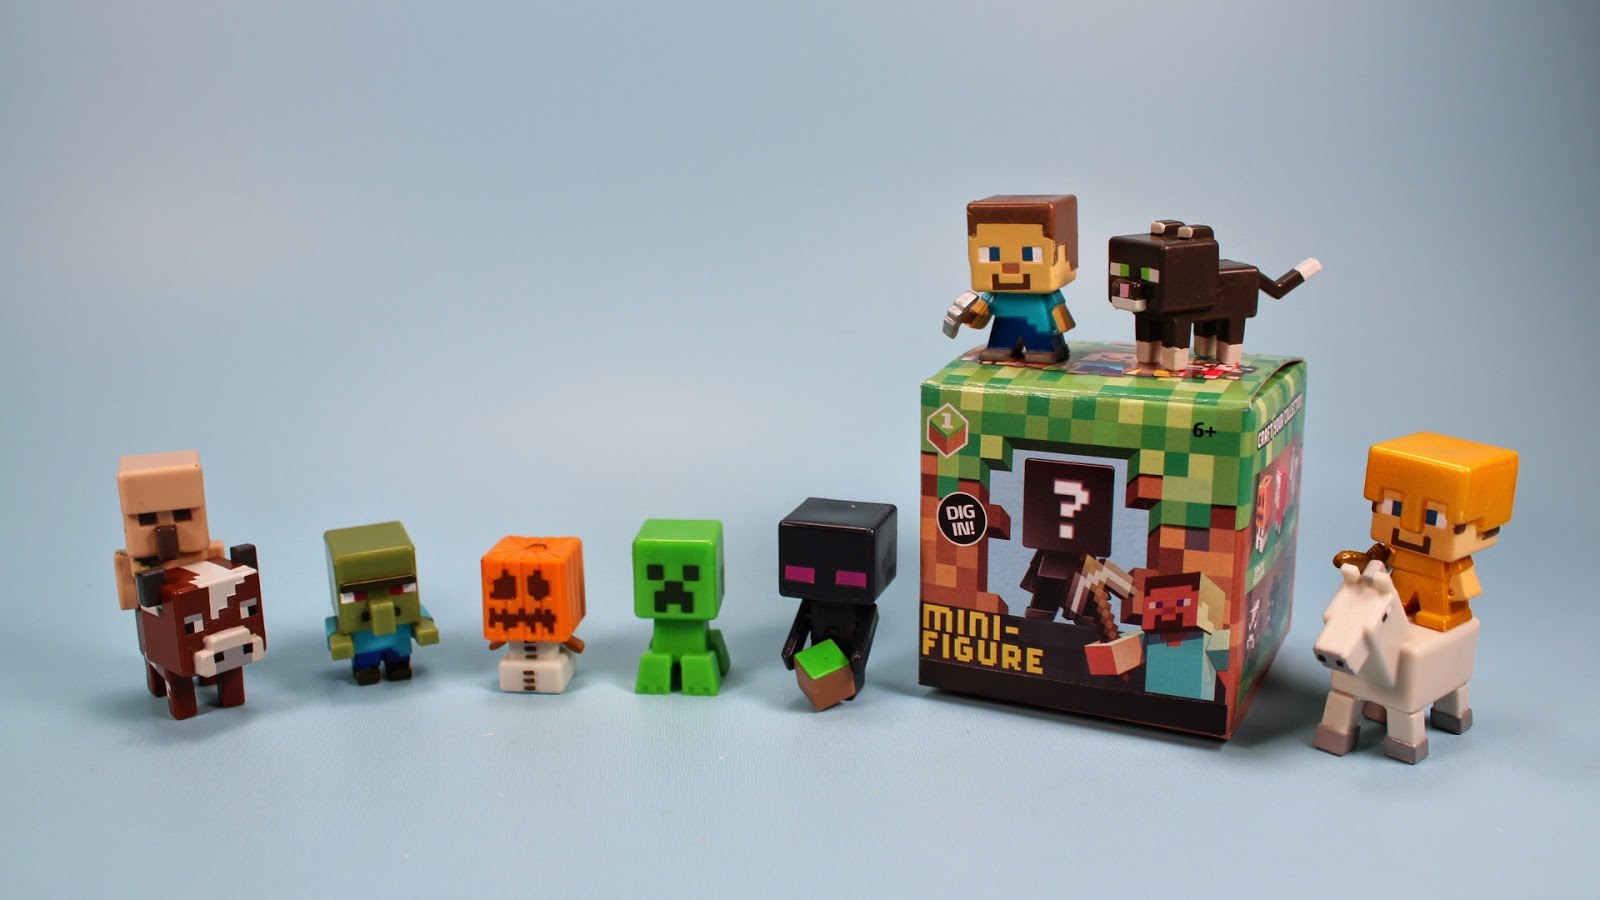 Toy Mystery Box : The toy museum minecraft mini figure blind mystery box